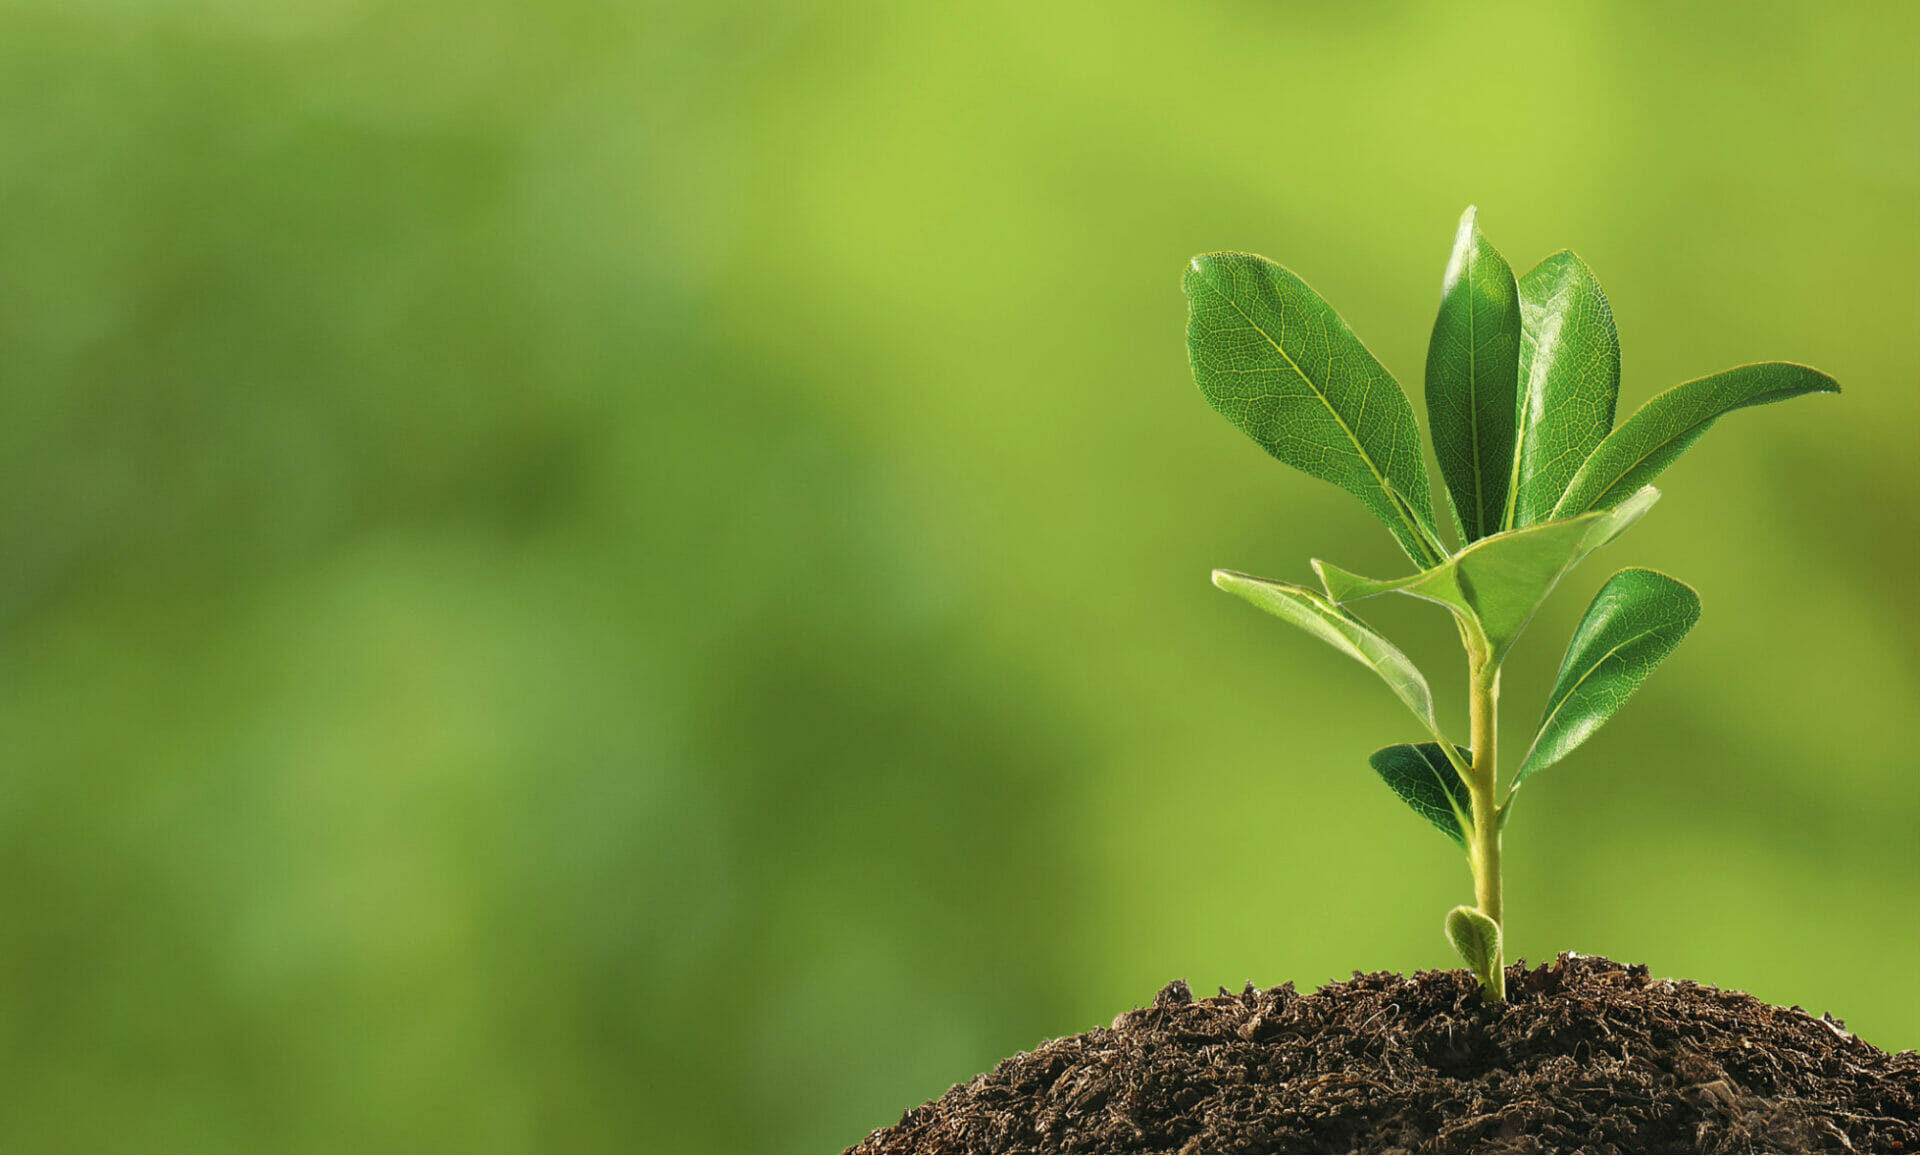 Plant Your Roots and Watch Them Grow: Creating Brand Evangelists